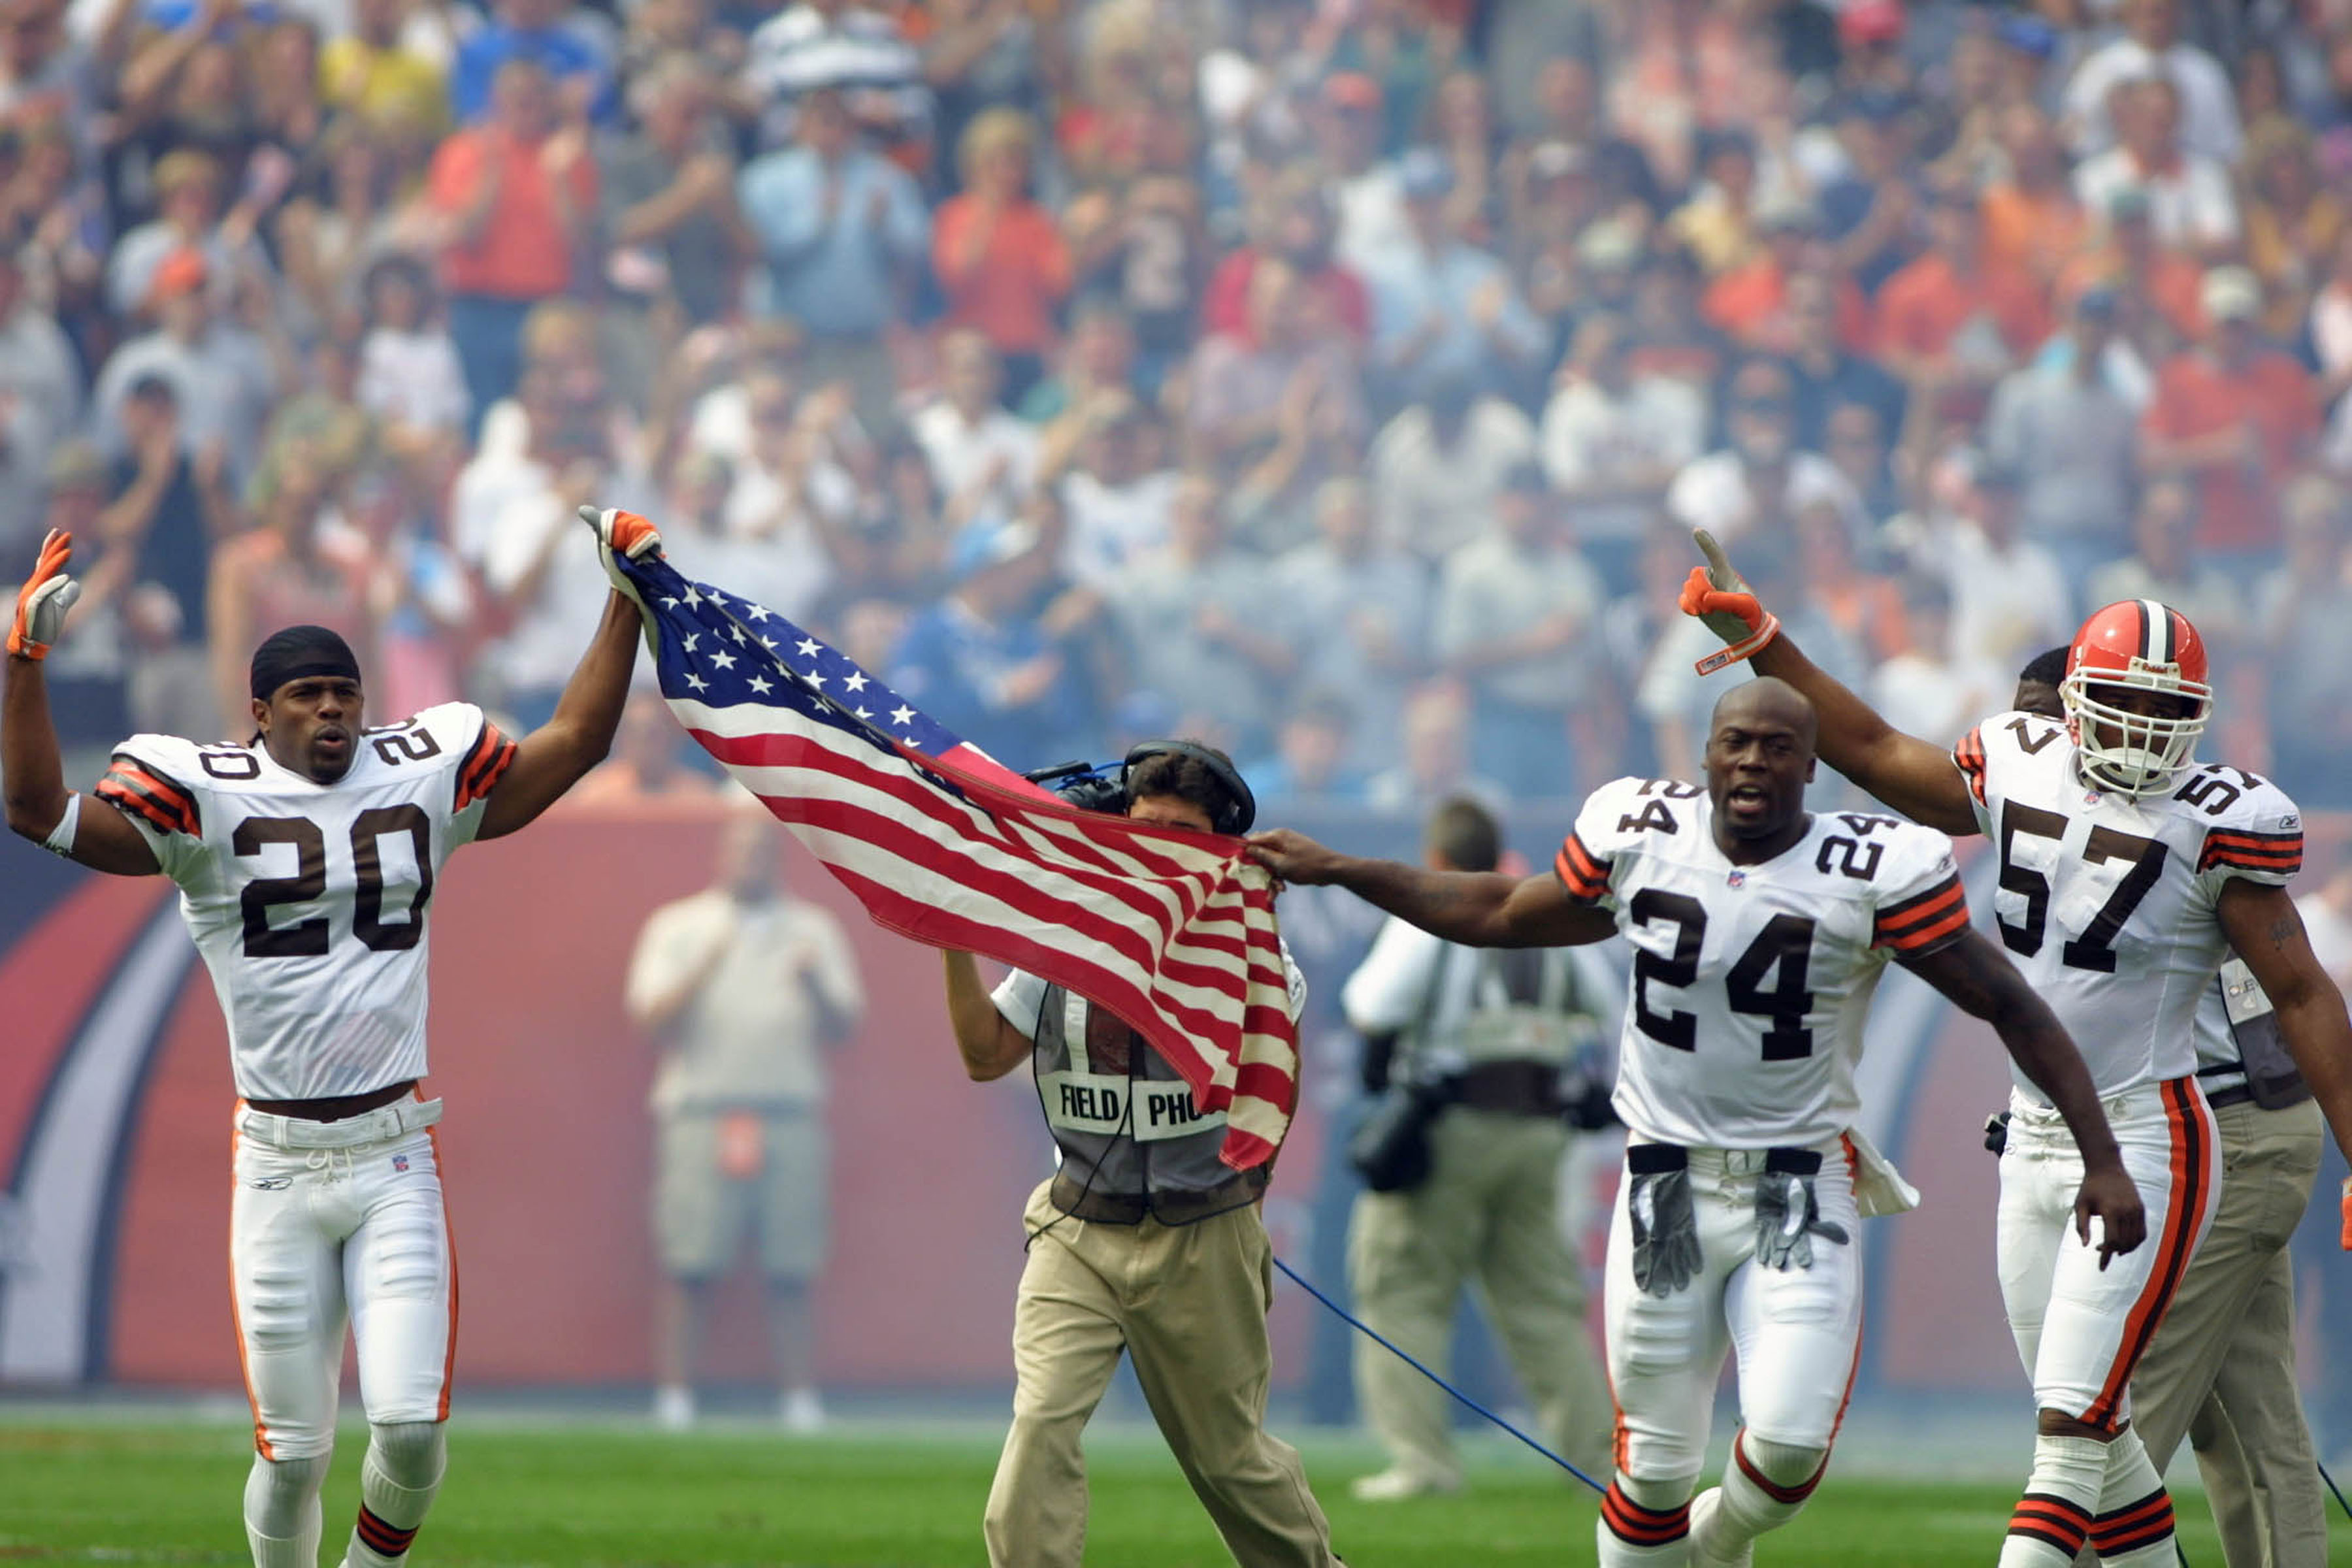 Earl Little and Corey Fuller, of the Cleveland Browns, with an American flag during pre-game ceremonies on Sept. 23, 2001.